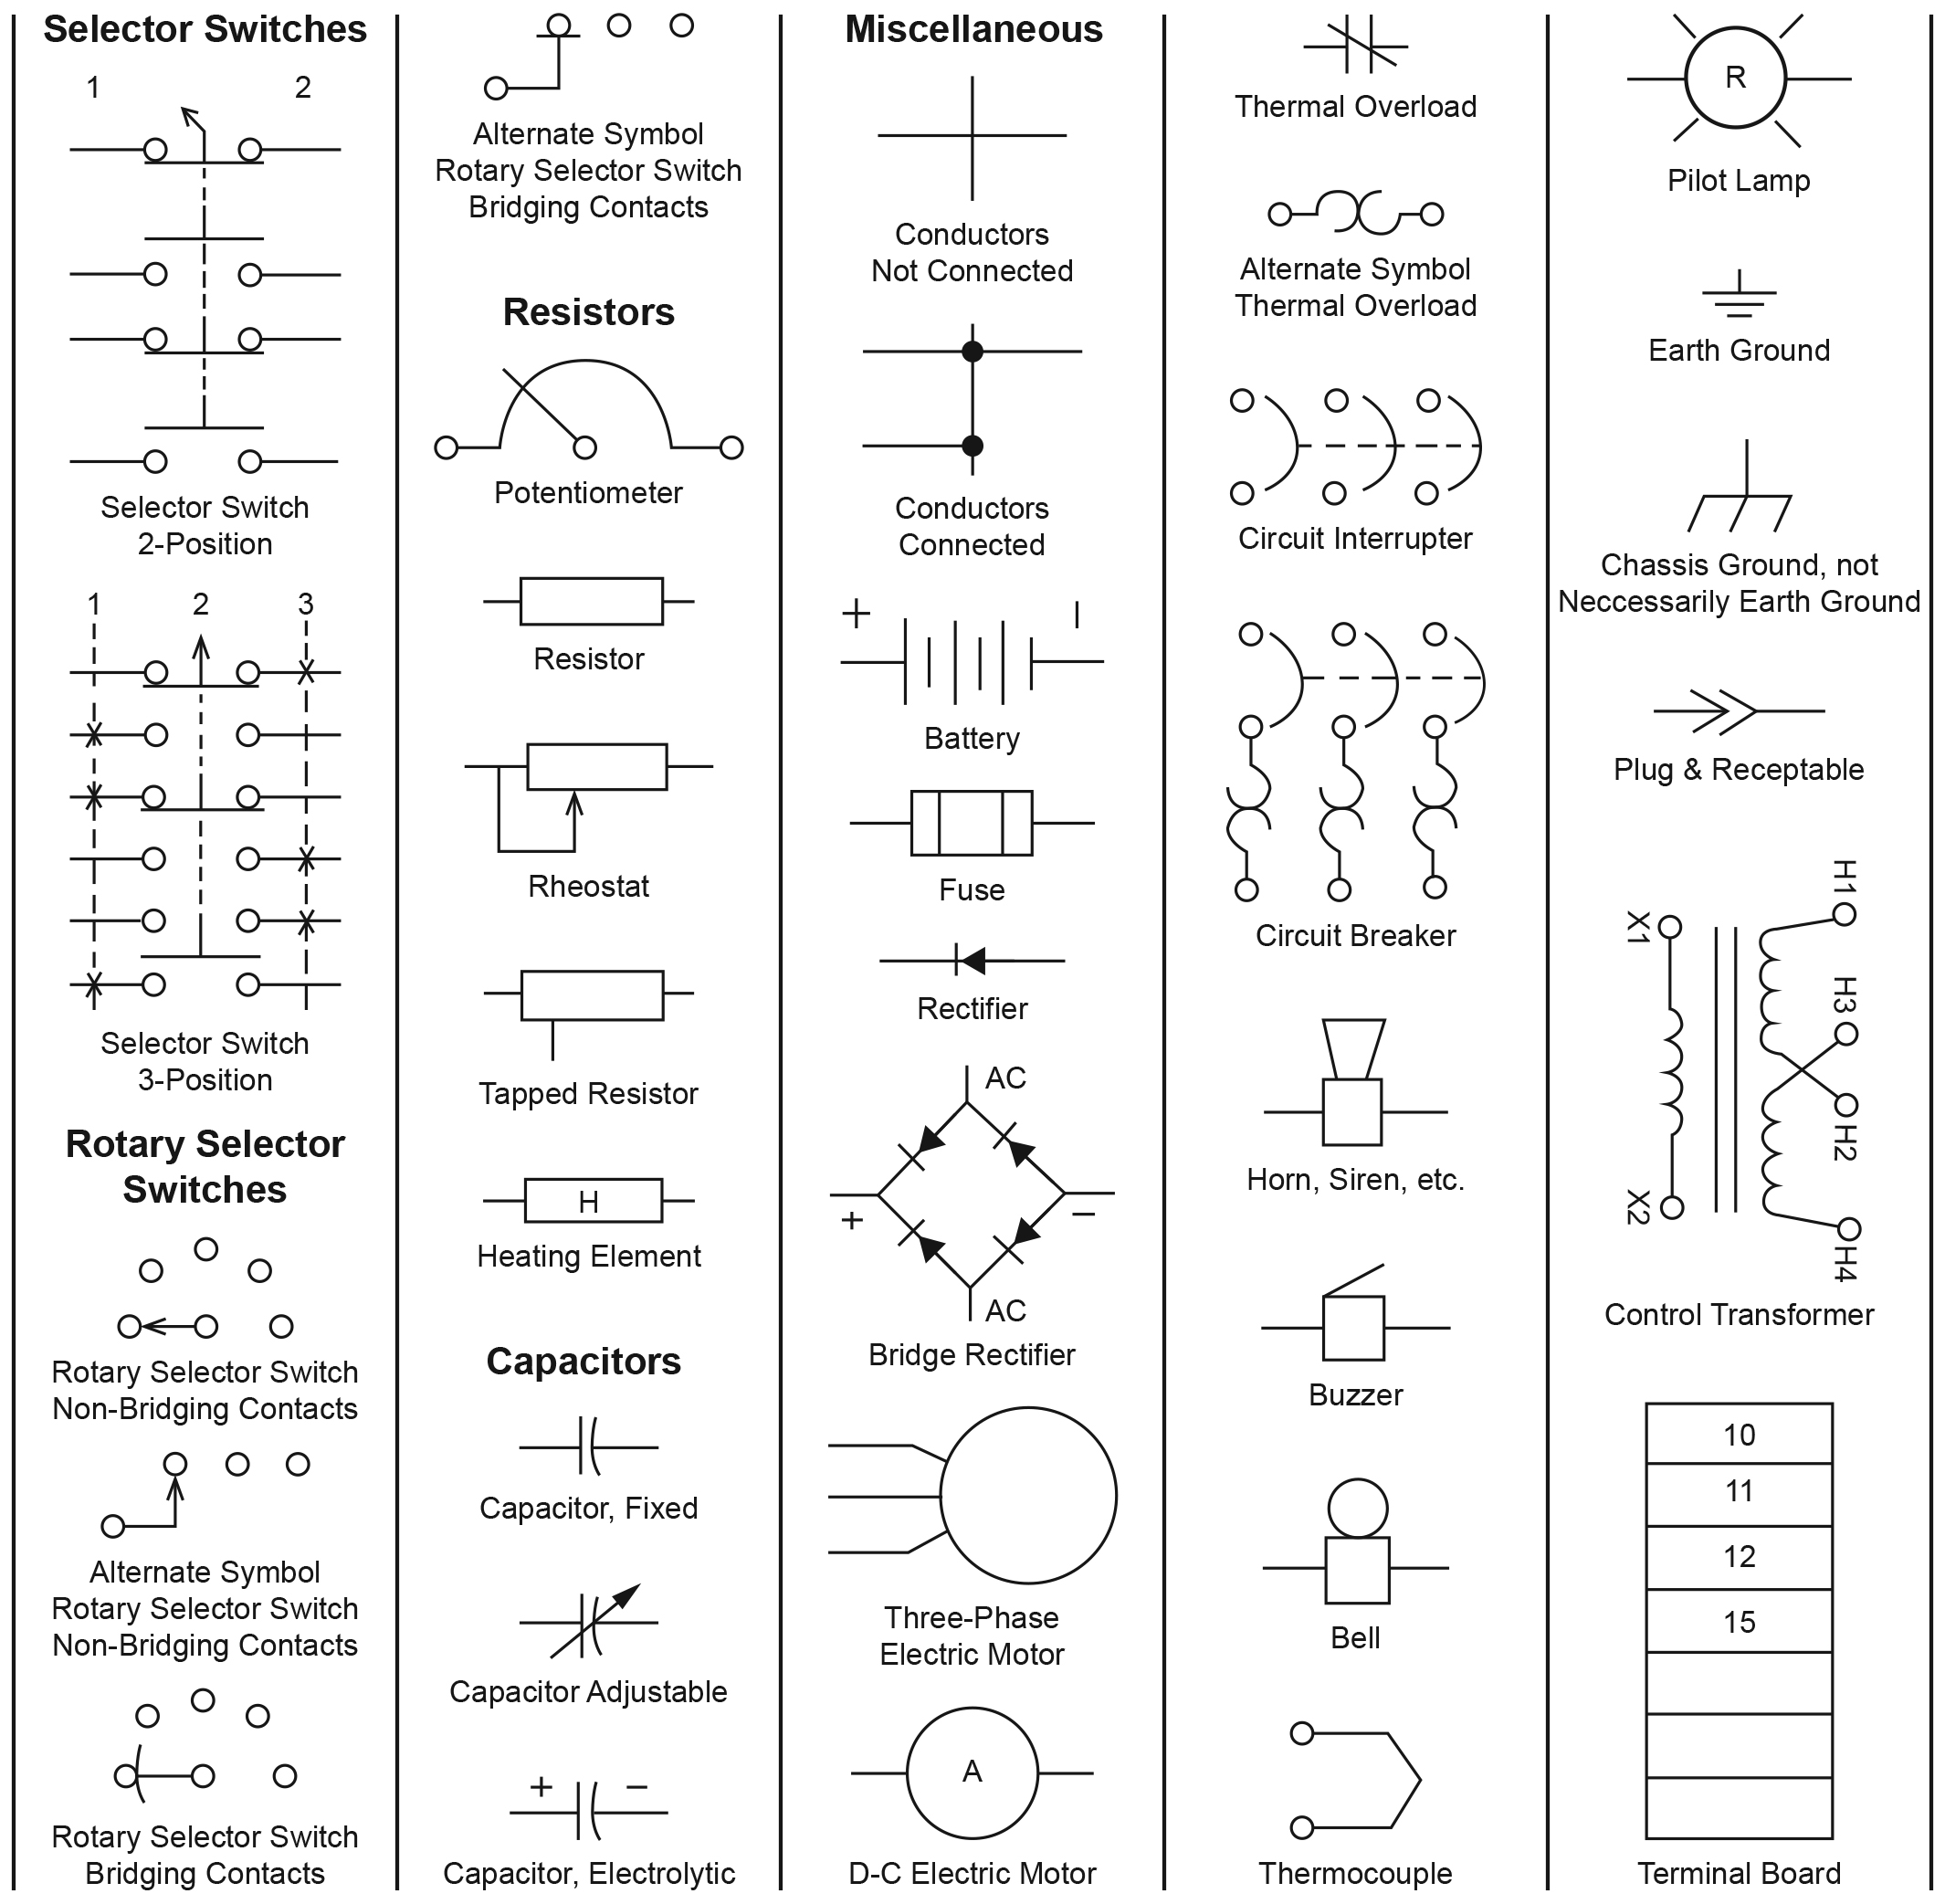 JIC Standard Symbols for Electrical Ladder Diagrams - Womack Machine